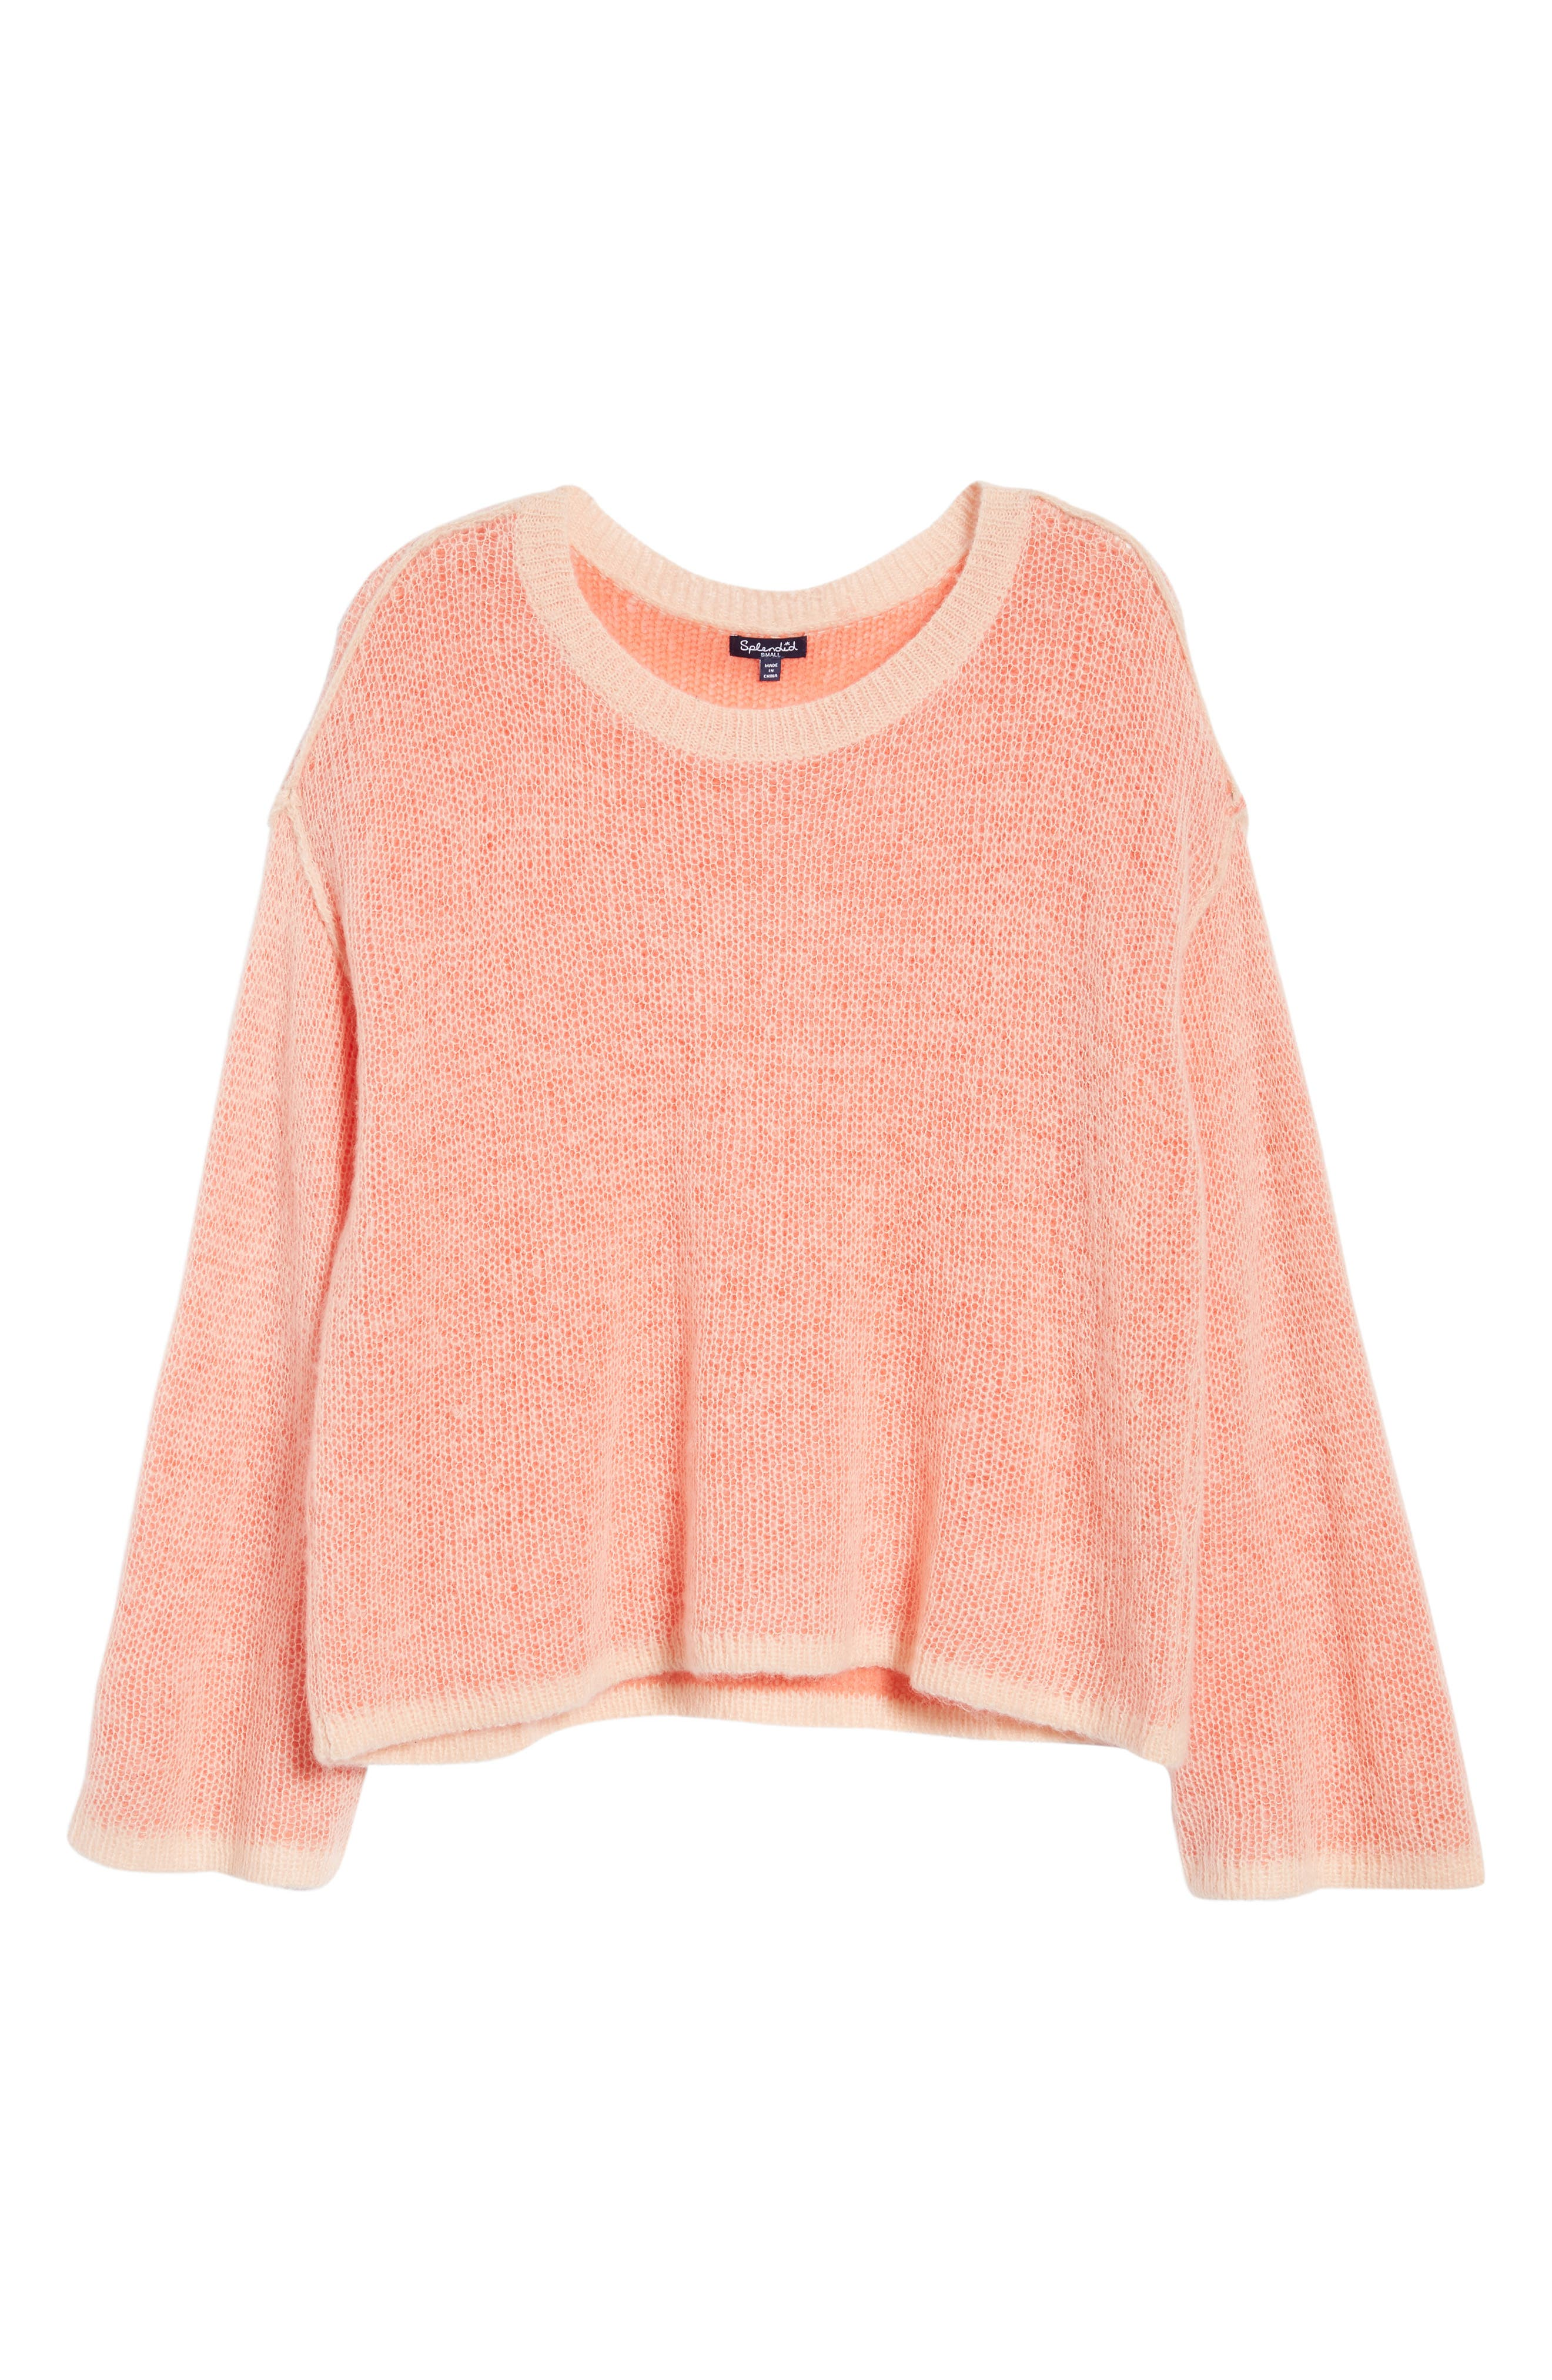 Bell Sleeve Sweater,                             Alternate thumbnail 7, color,                             Pink